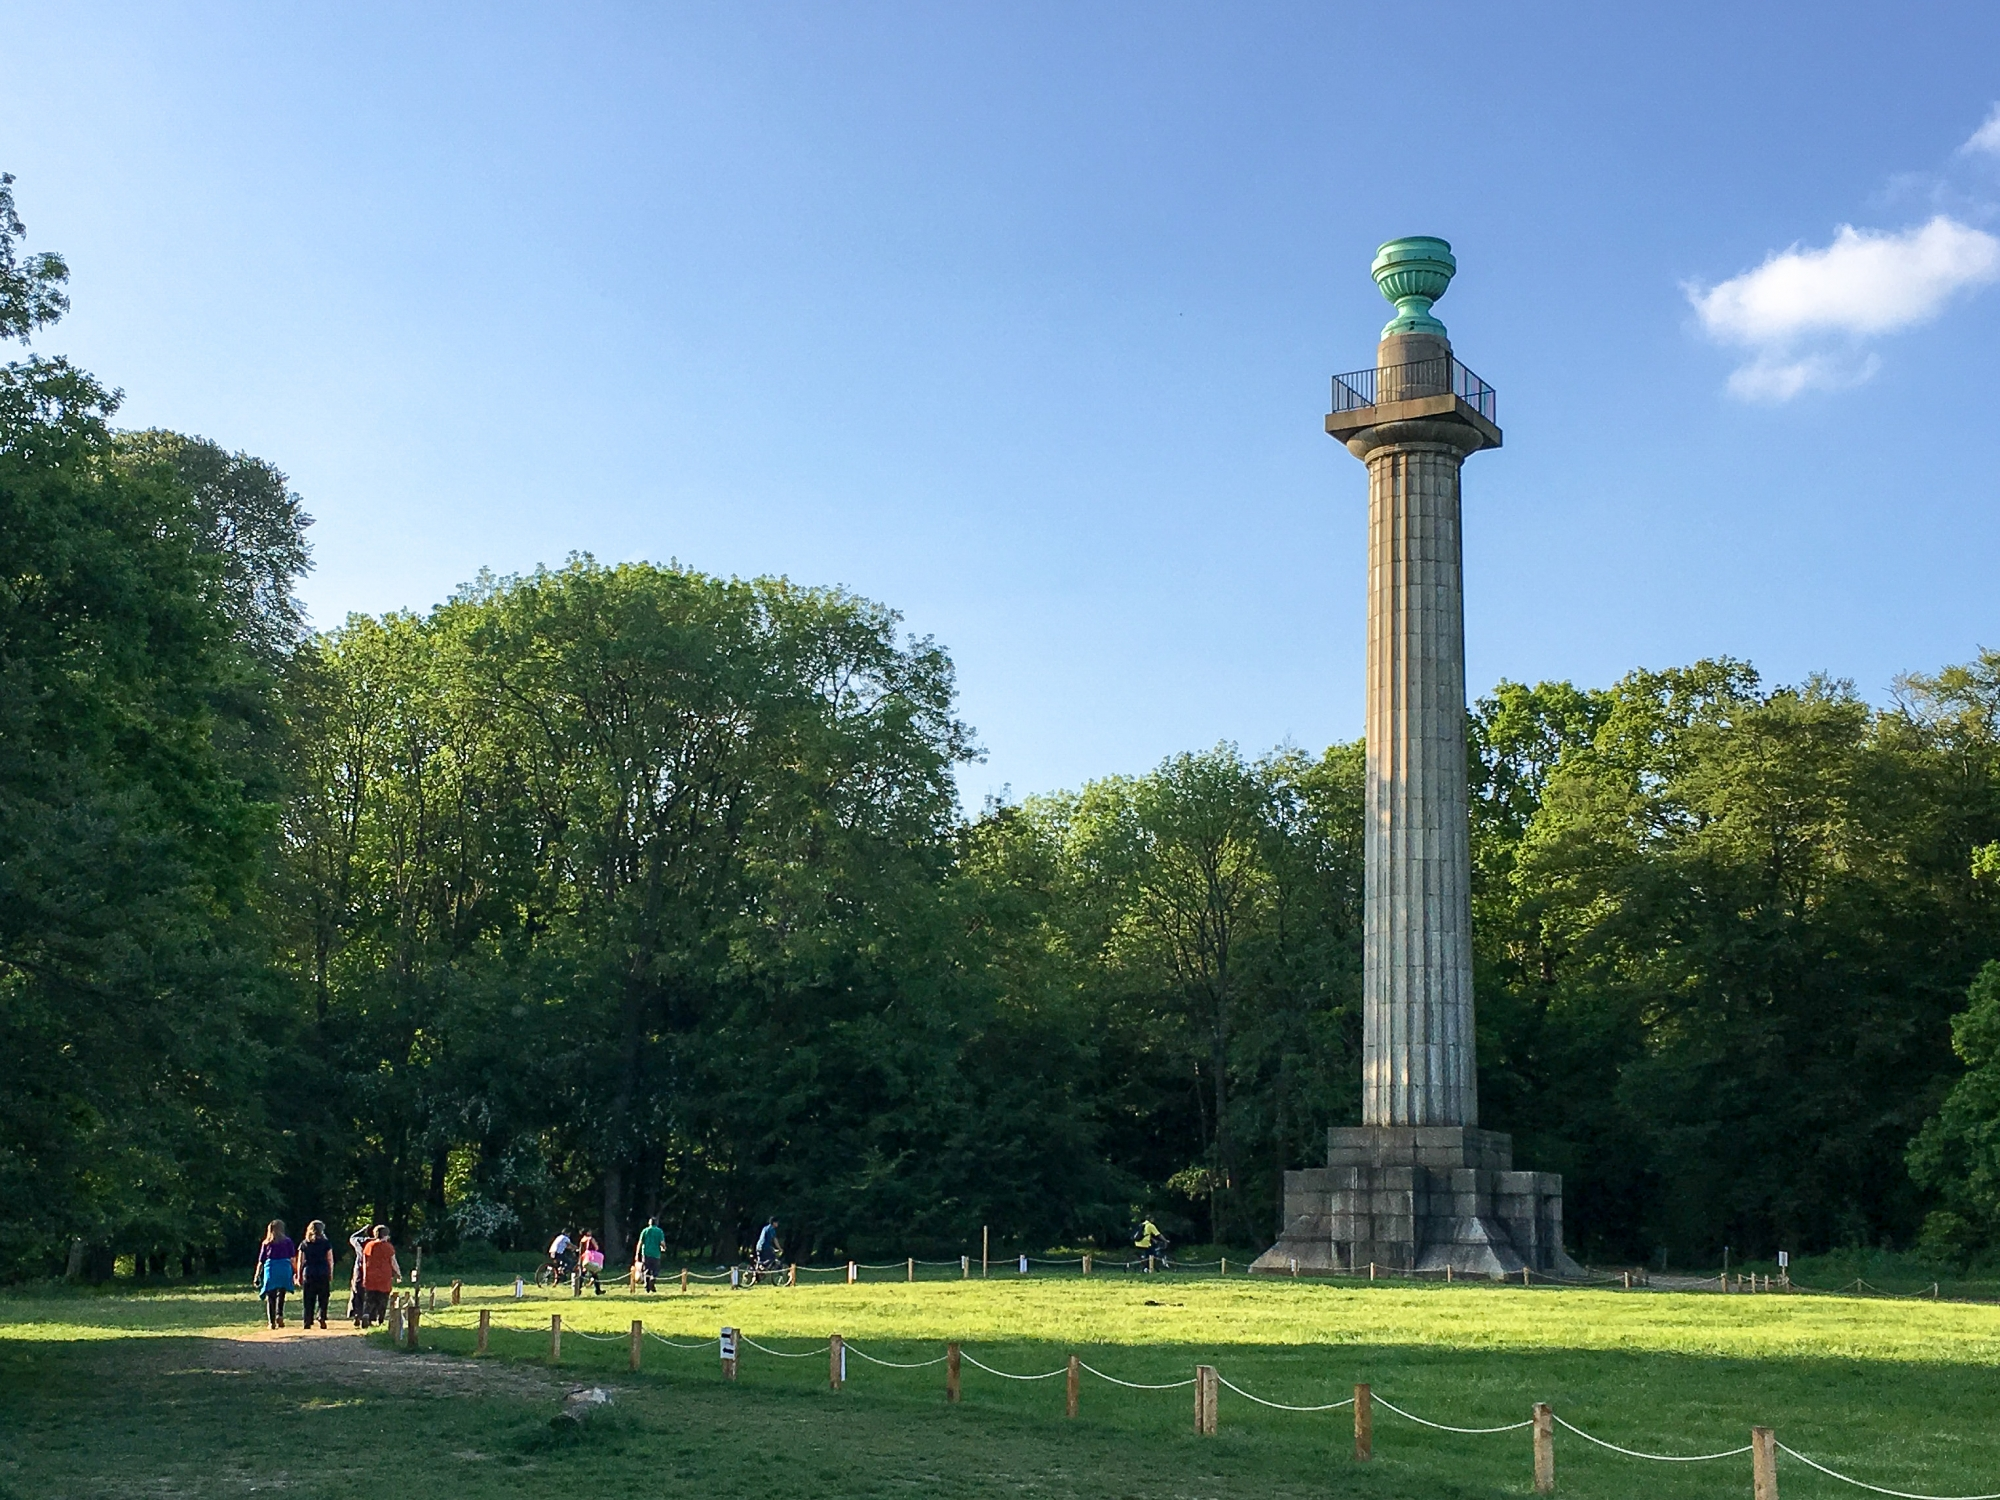 Bridgewater Monument, Ashridge, Hertfordshire